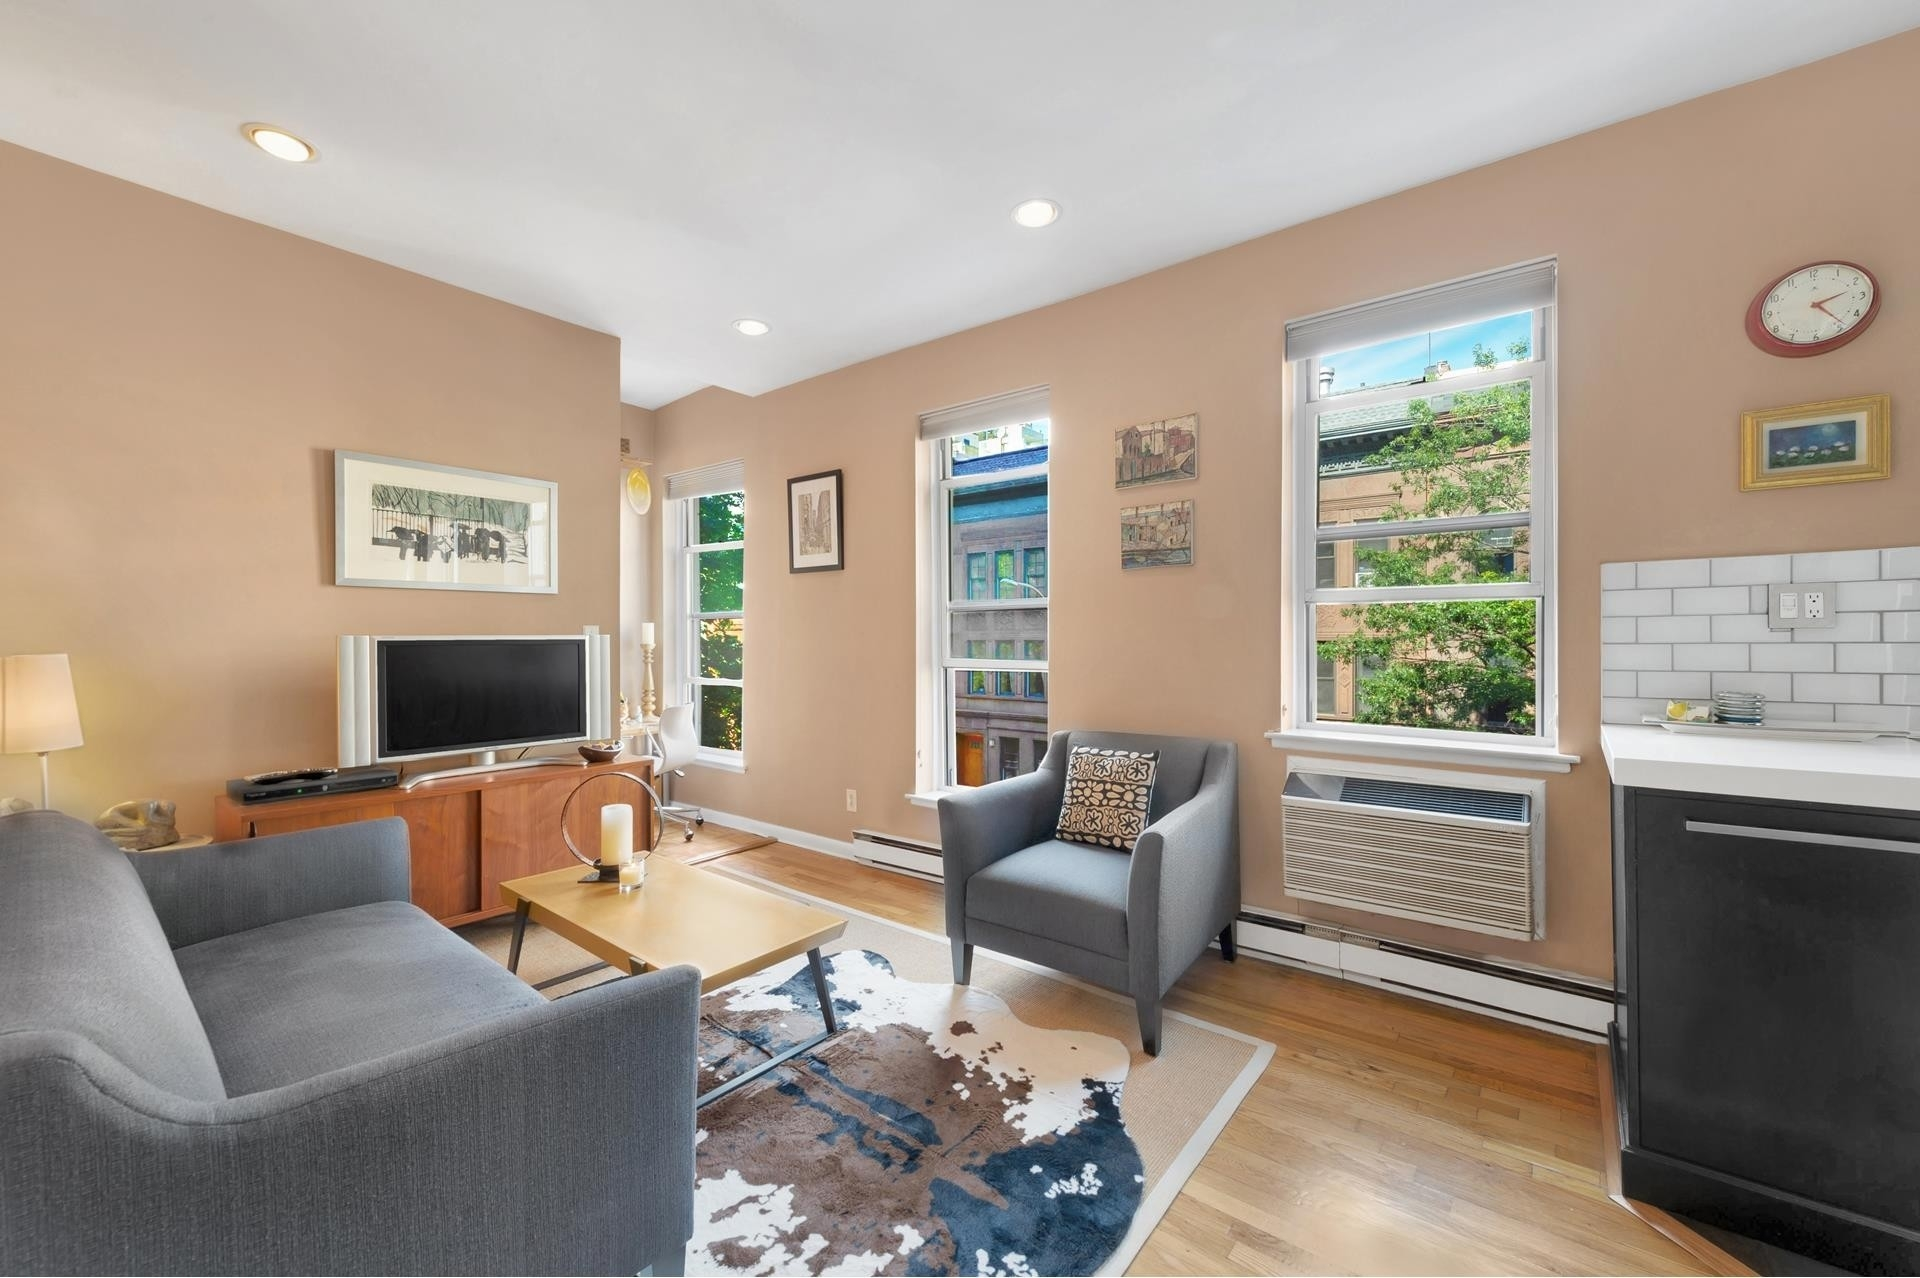 Co-op Properties for Sale at 320 West 84th St, 3A Upper West Side, New York, NY 10024